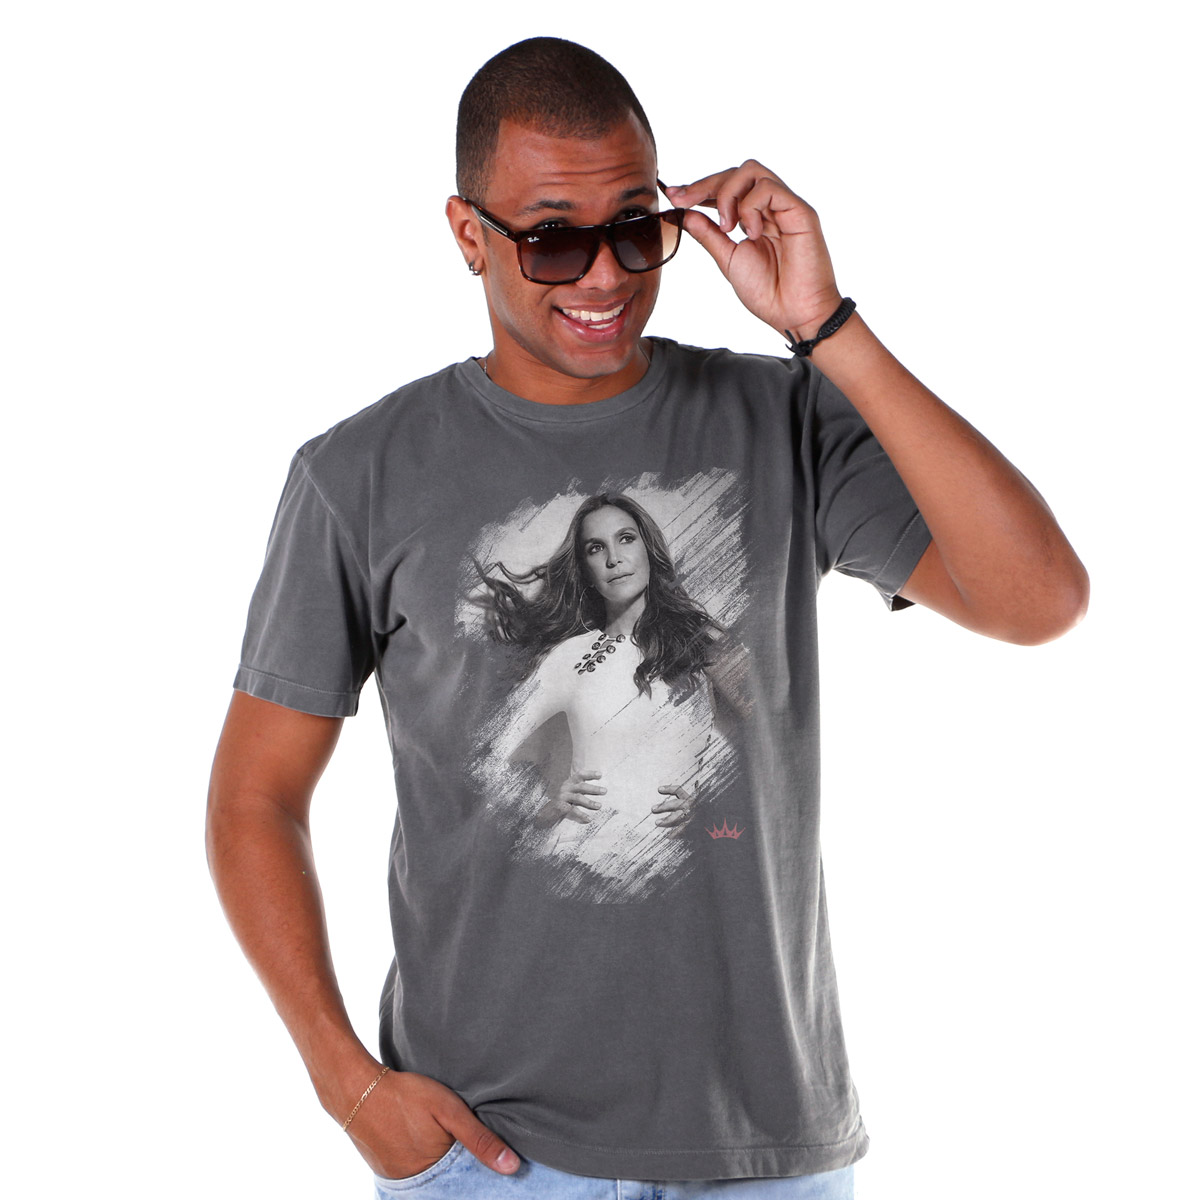 T-shirt Premium Masculina Ivete Sangalo Careless Whisper